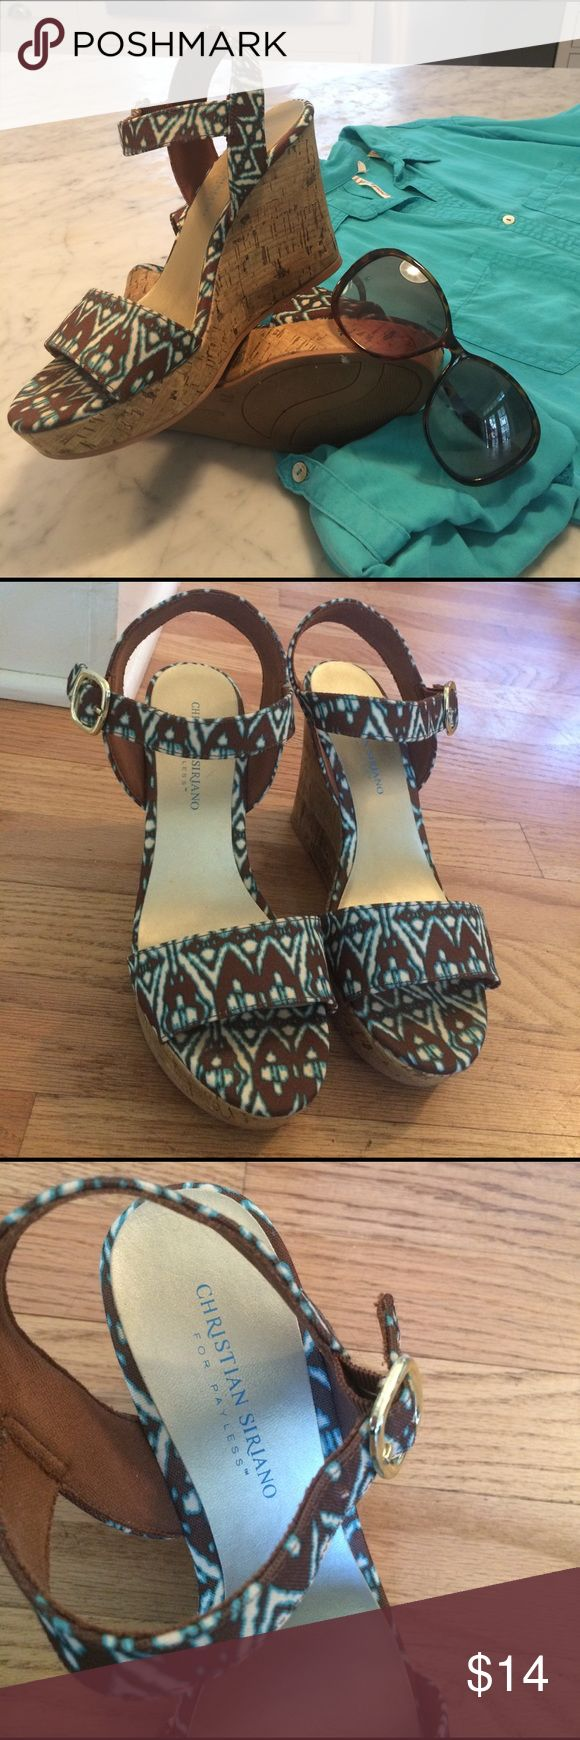 """Batik pattern platform sandals Fabulous summer outfit-maker! Brown, turquoise and white batik pattern, cork covered 4-1/4"""" heel with appx 1"""" platform at toe.  Comfortable. Worn twice, so a little wear on the soles but otherwise in EUC! Christian Siriano for Payless Shoes Wedges"""